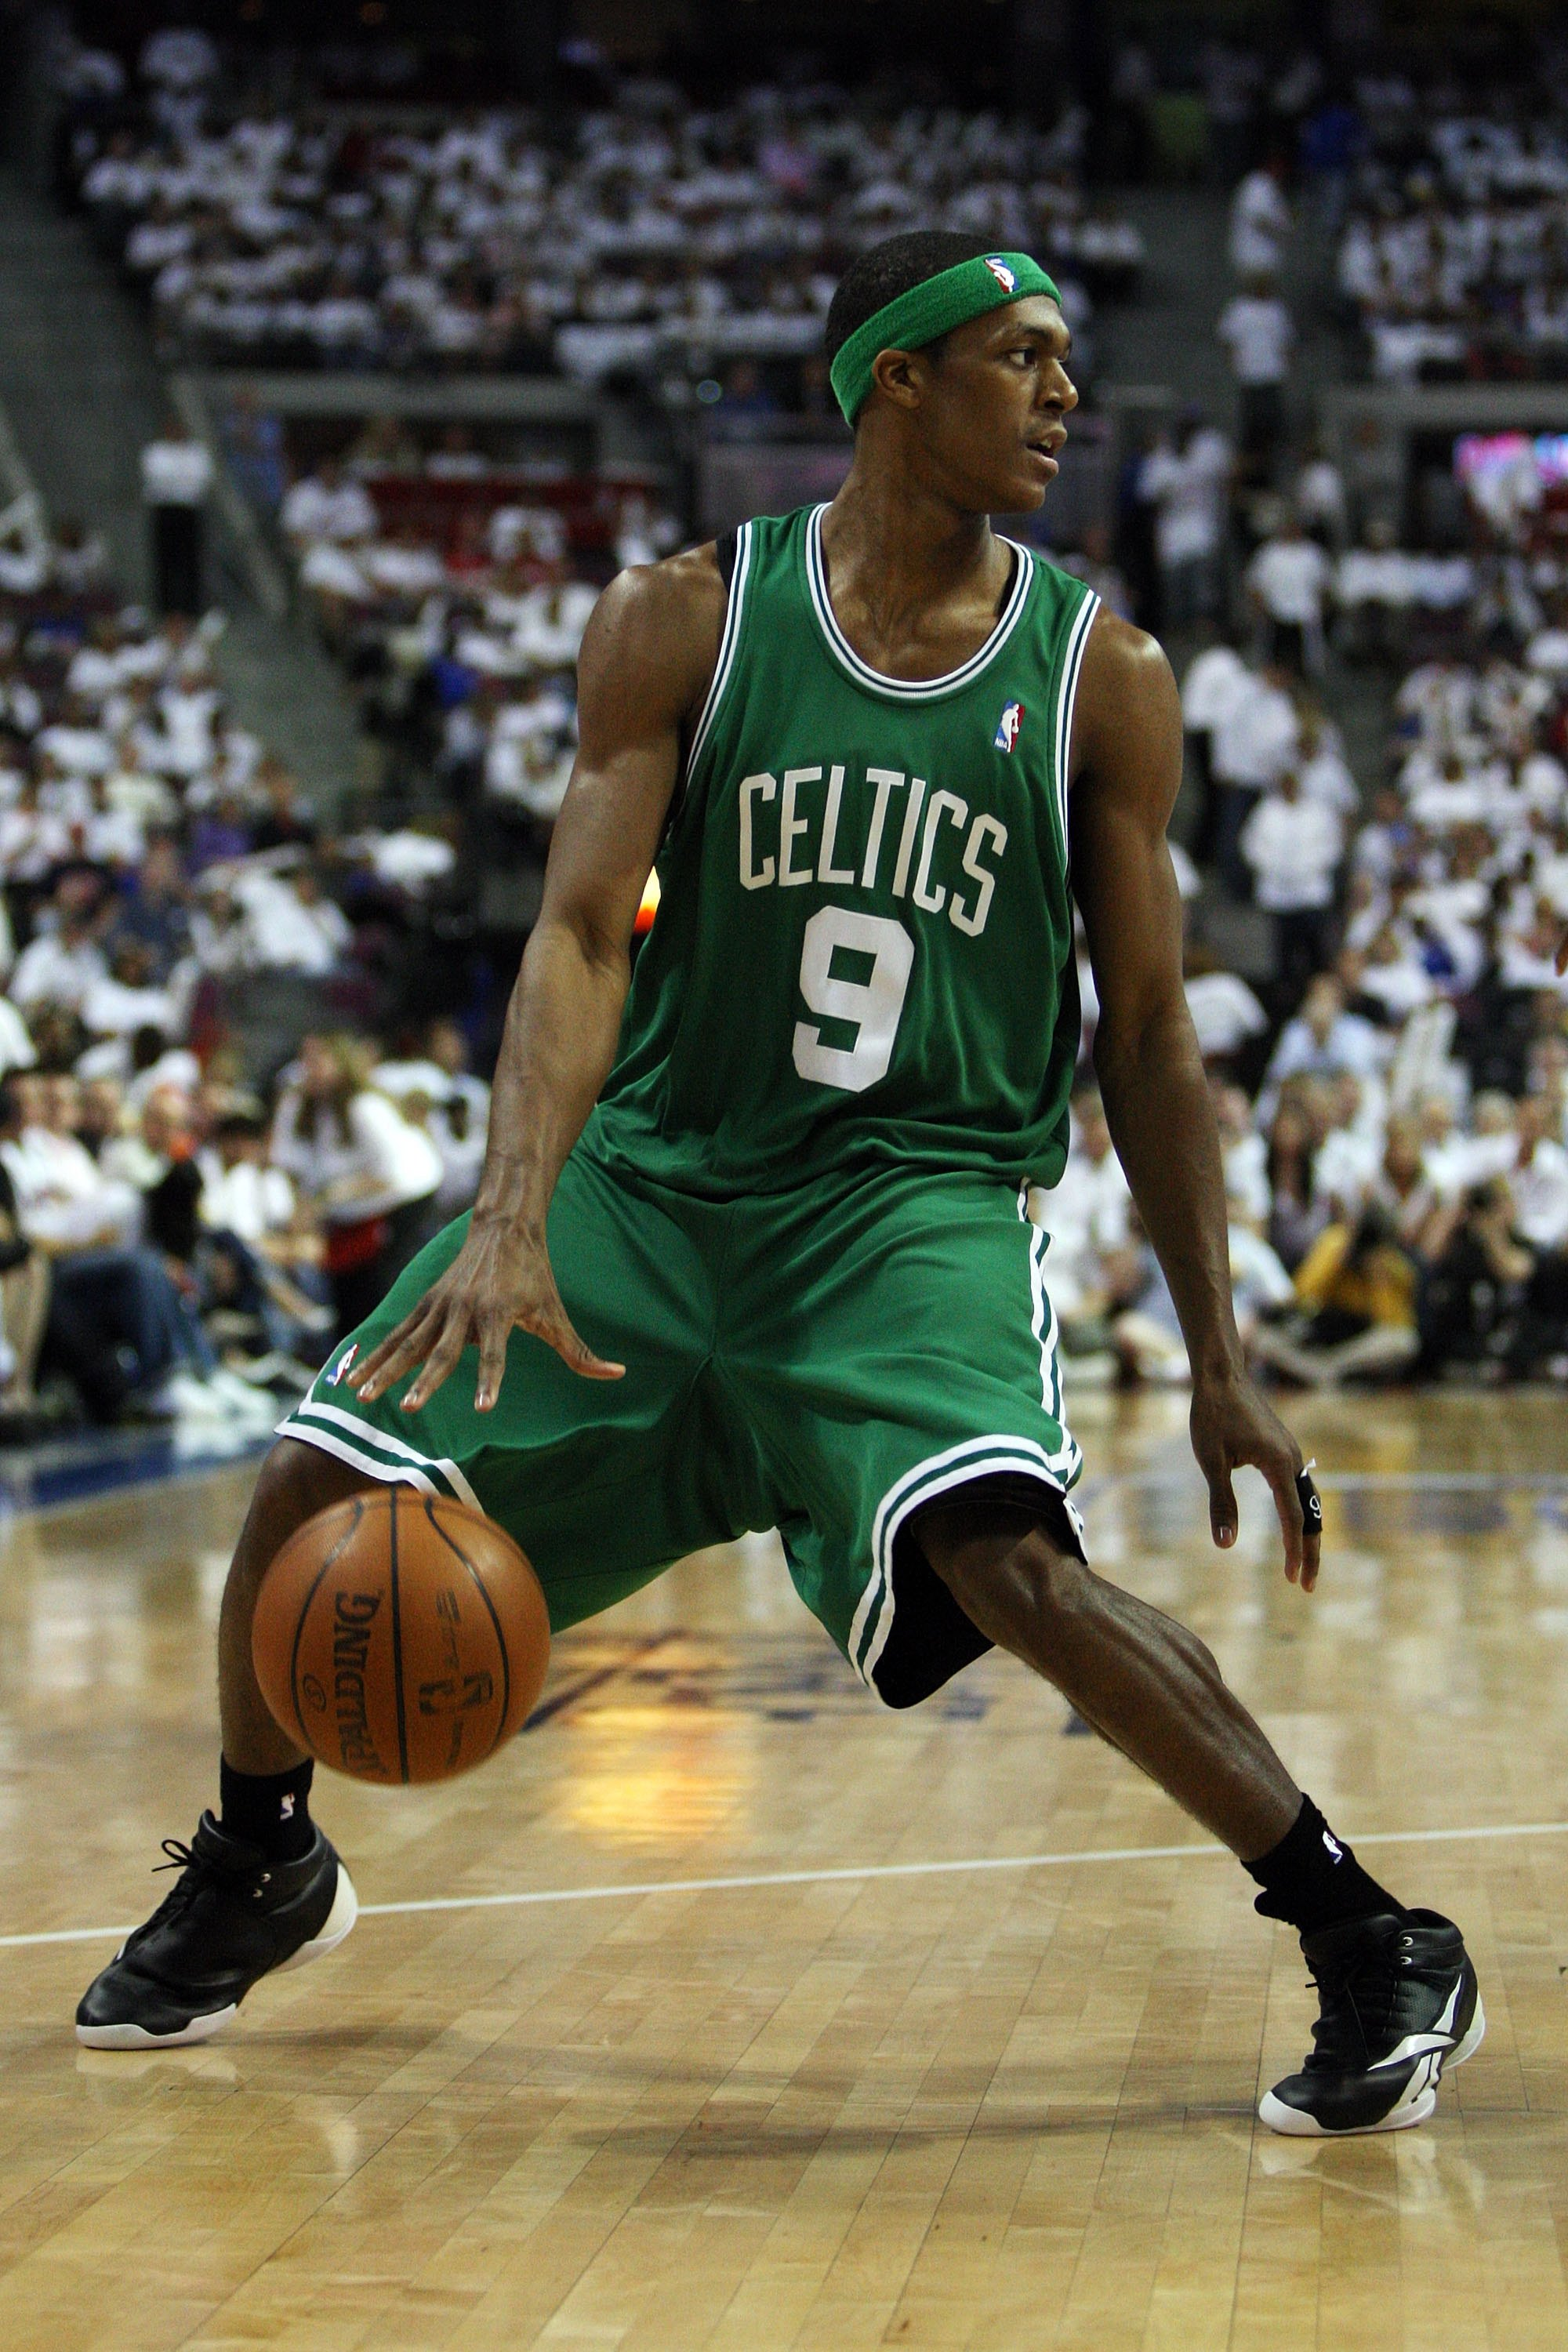 AUBURN HILLS, MI - MAY 24:  Rajon Rondo #9 of the Boston Celtics handles the ball against the Detroit Pistons in Game Three of the Eastern Conference Finals during the 2008 NBA Playoffs on May 24, 2008 at the Palace at Auburn Hills in Auburn Hills, Michig